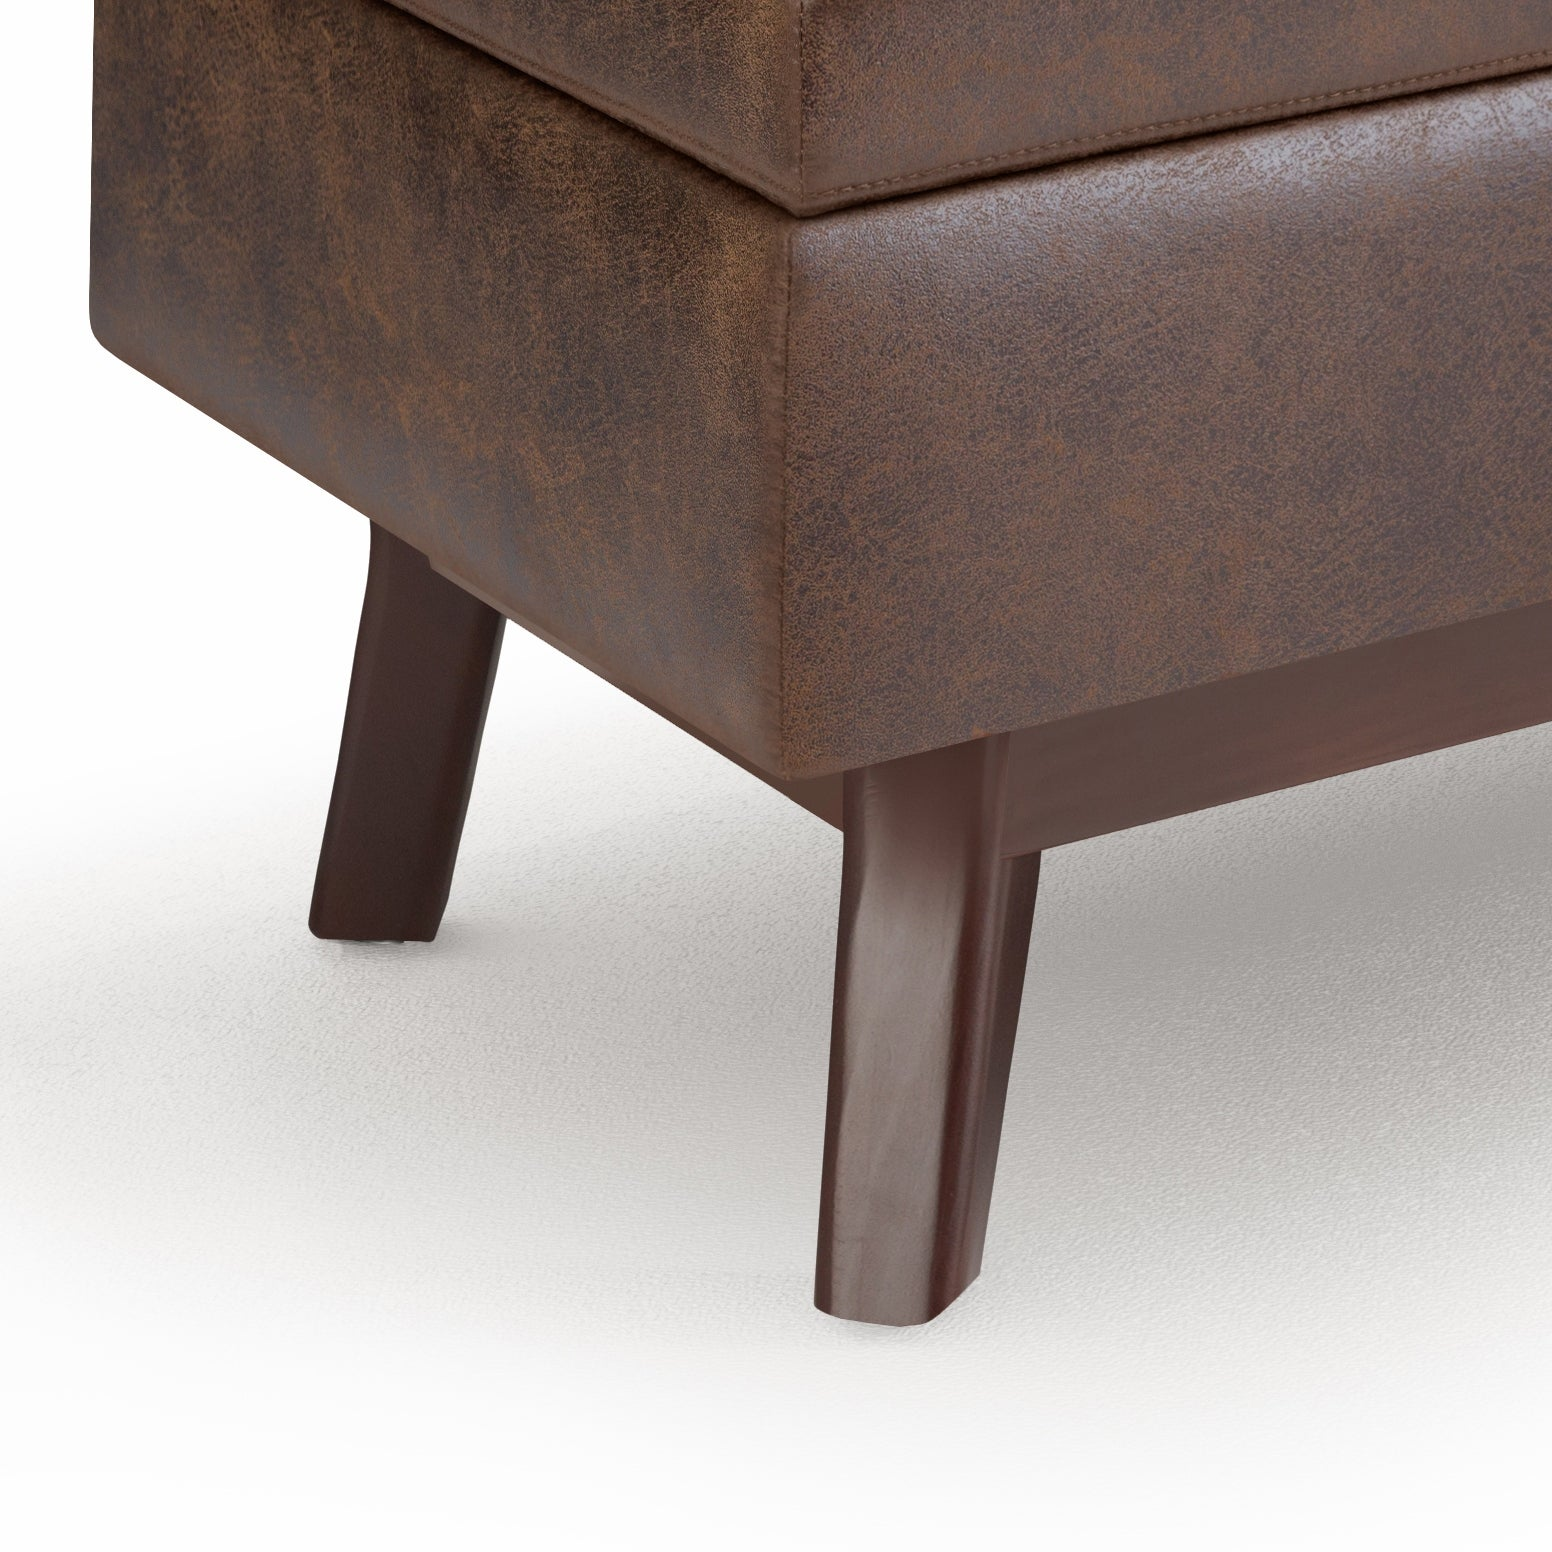 Shop Black Friday Deals On Wyndenhall Ethan 34 Inch Wide Mid Century Modern Rectangle Table Ottoman Overstock 14646859